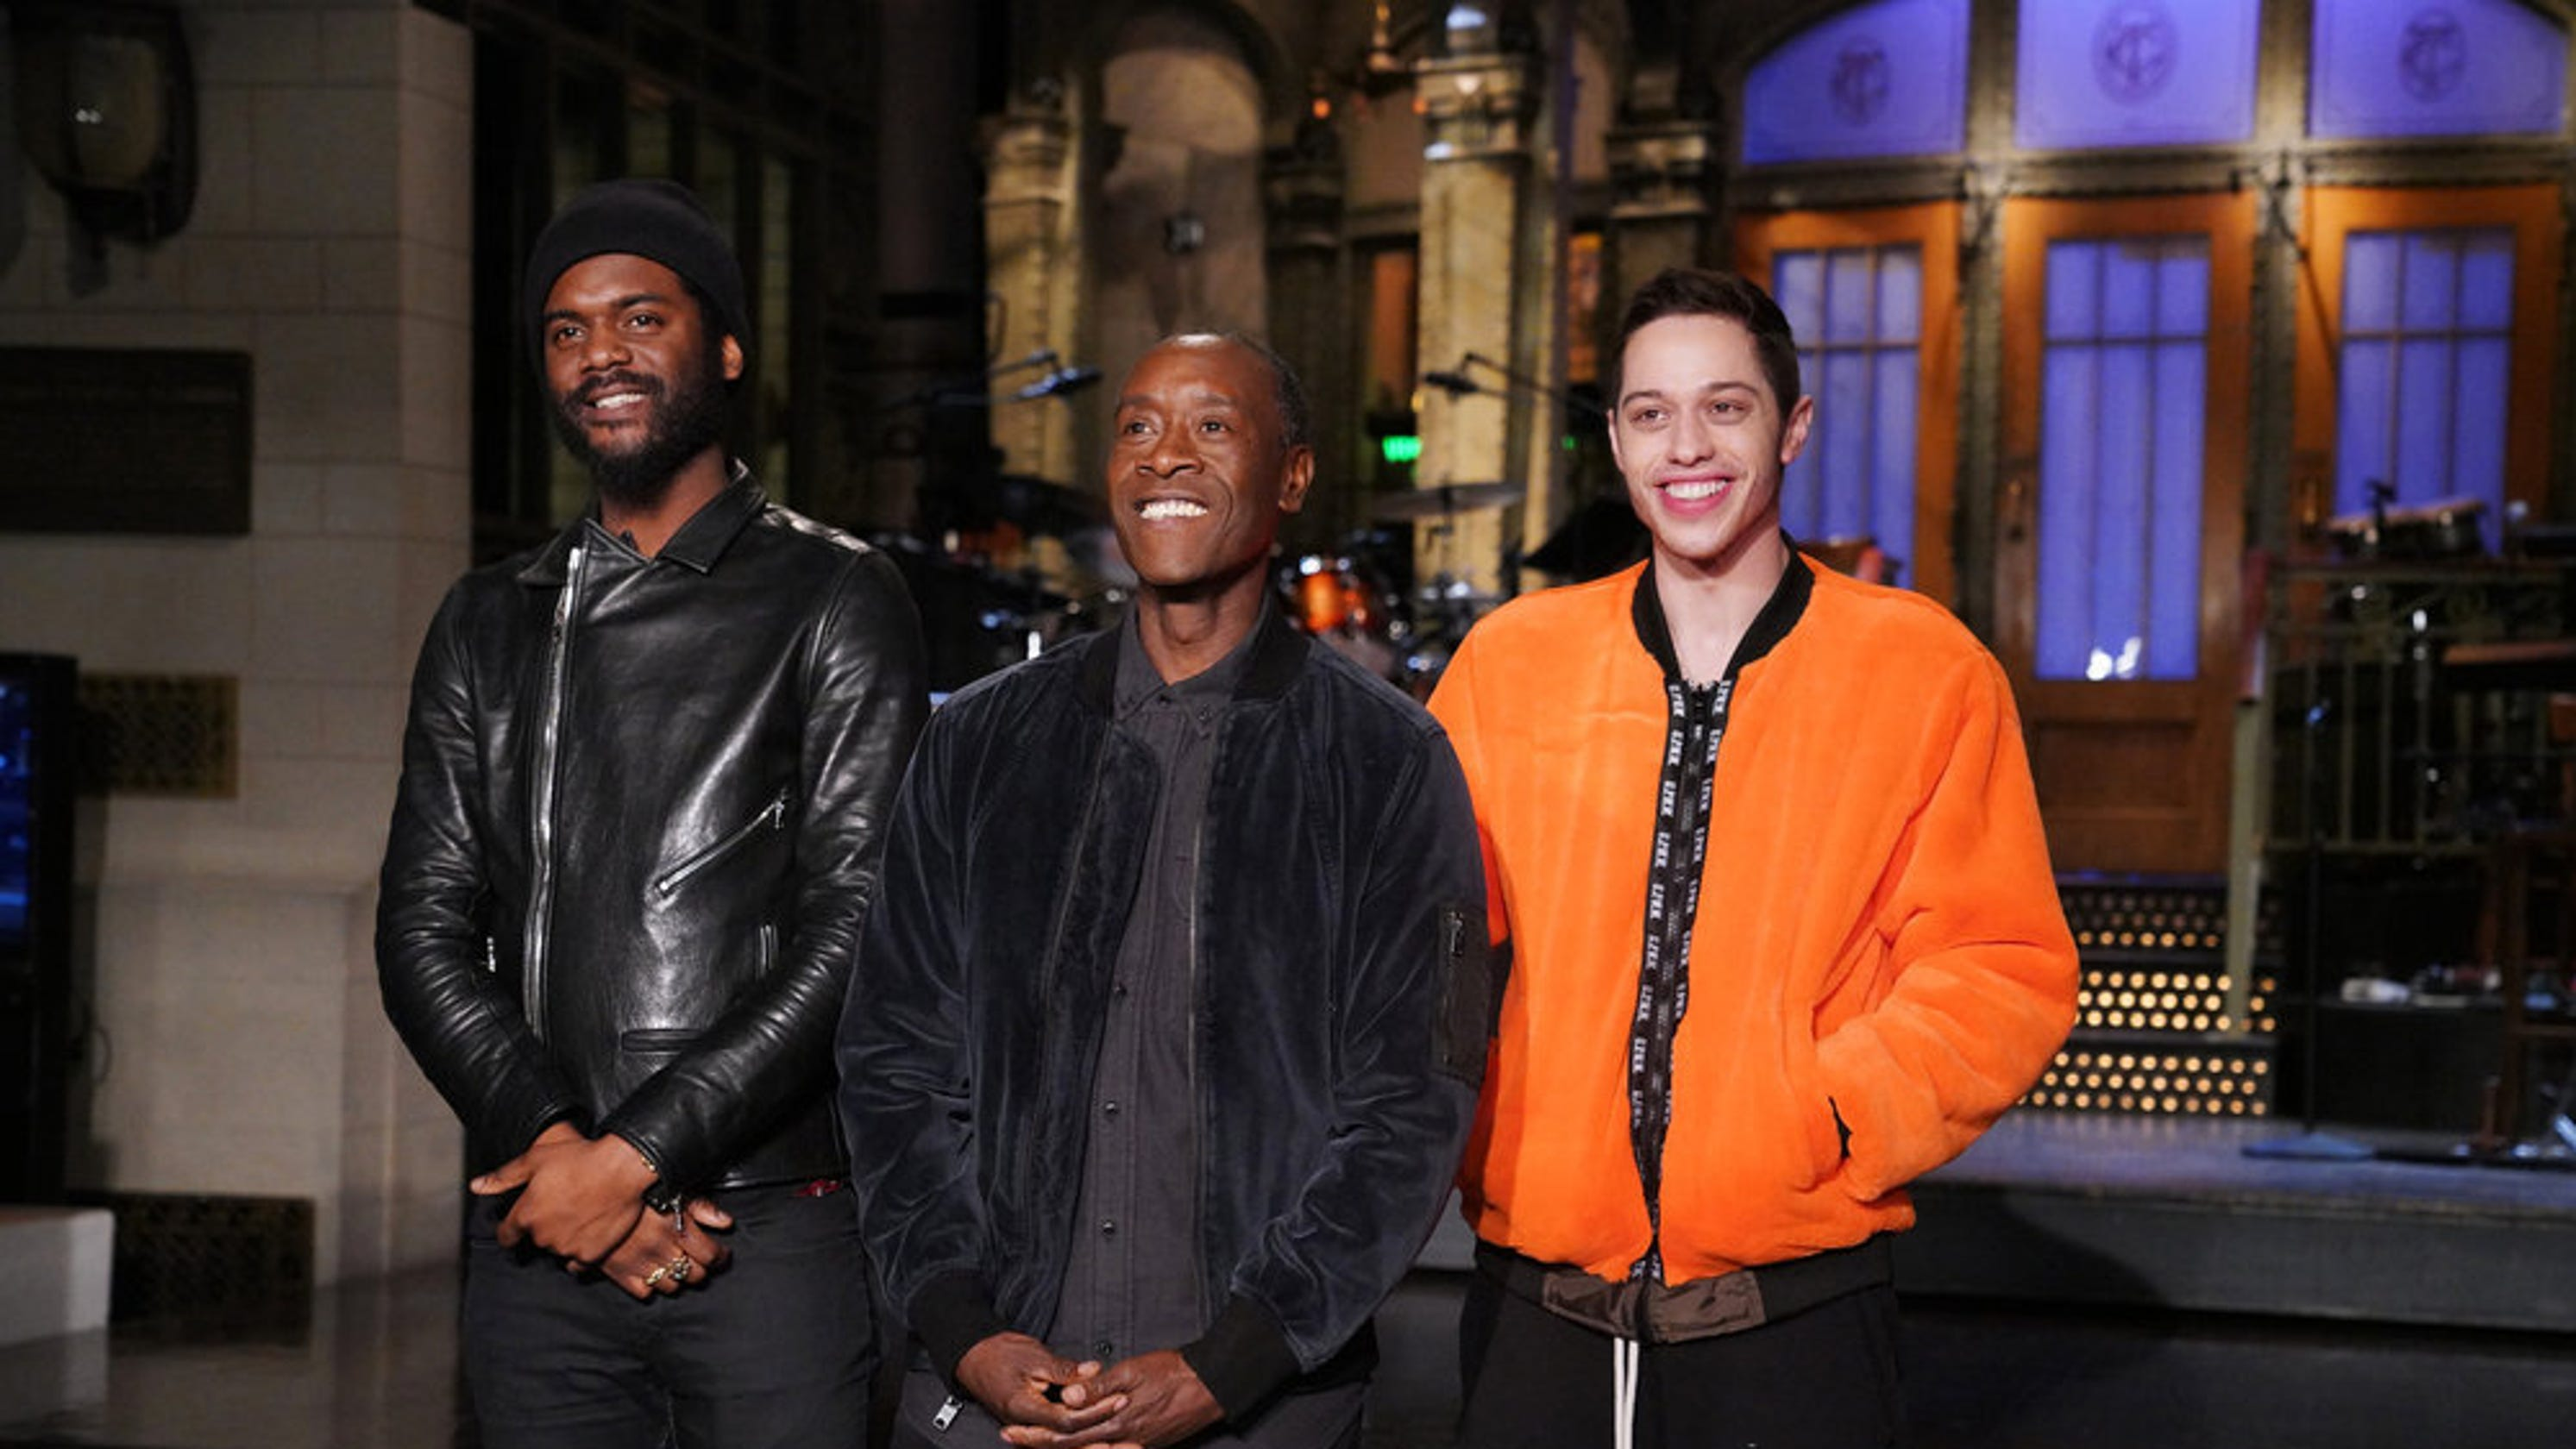 Snl Don Cheadle Wears Trump Soviet Union Jersey To Close Show